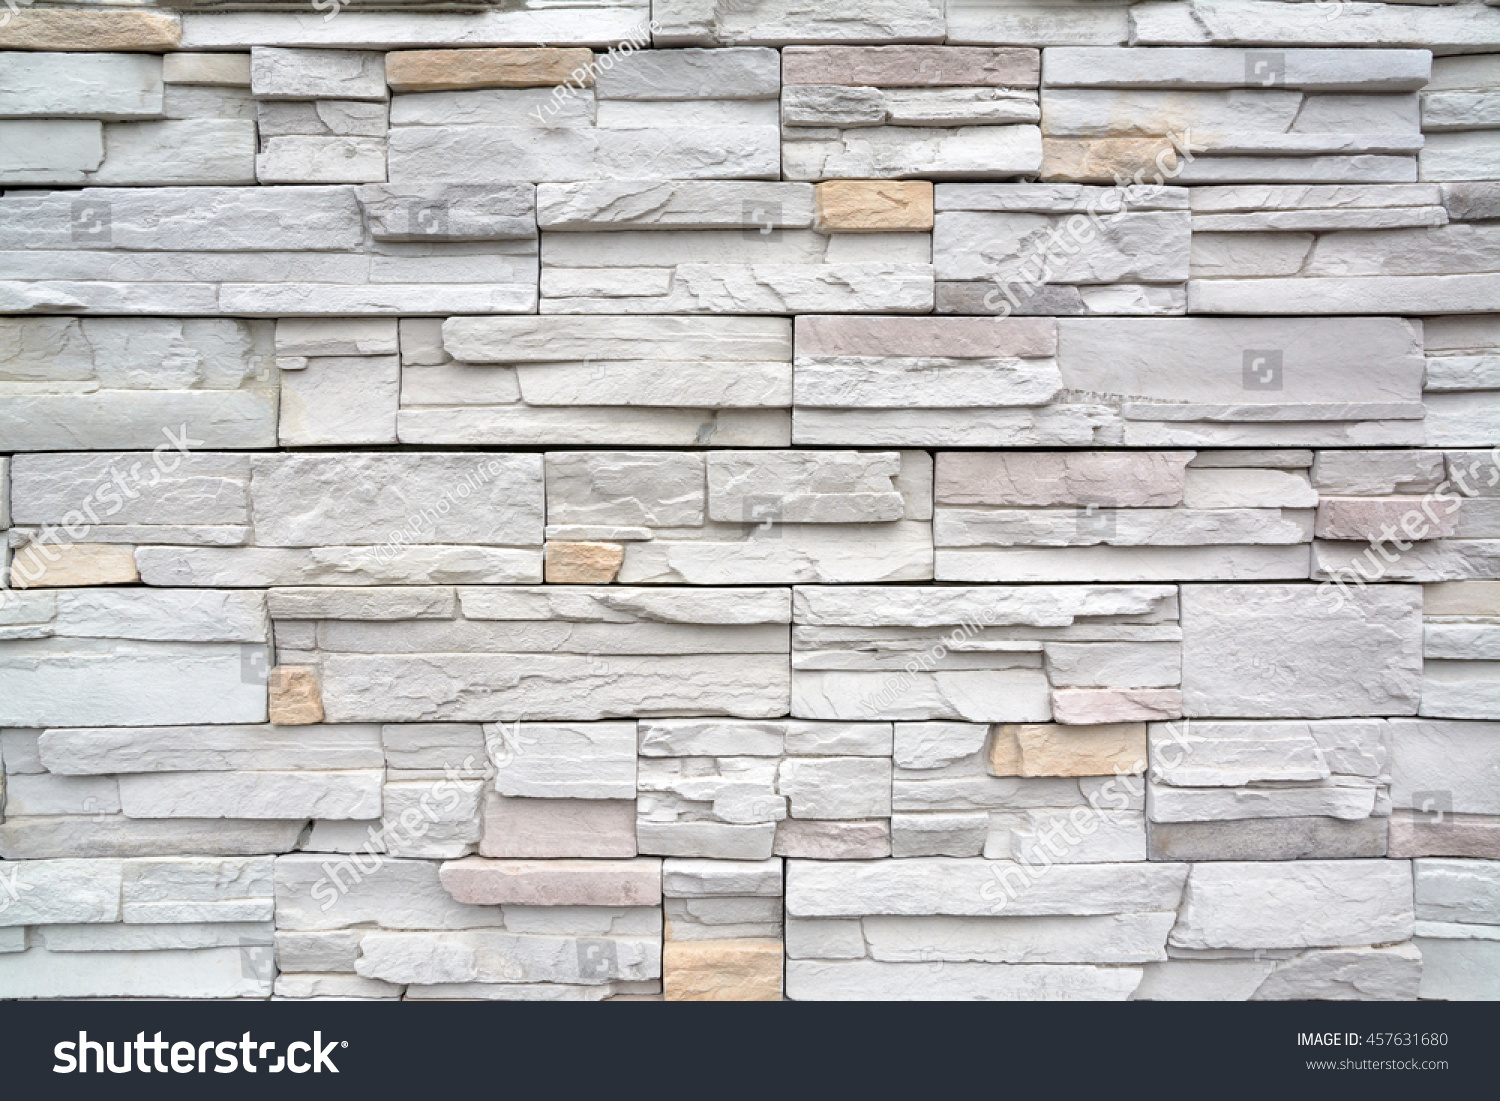 White Modern Brick Wall Stock Photo, Picture And Royalty Free ...